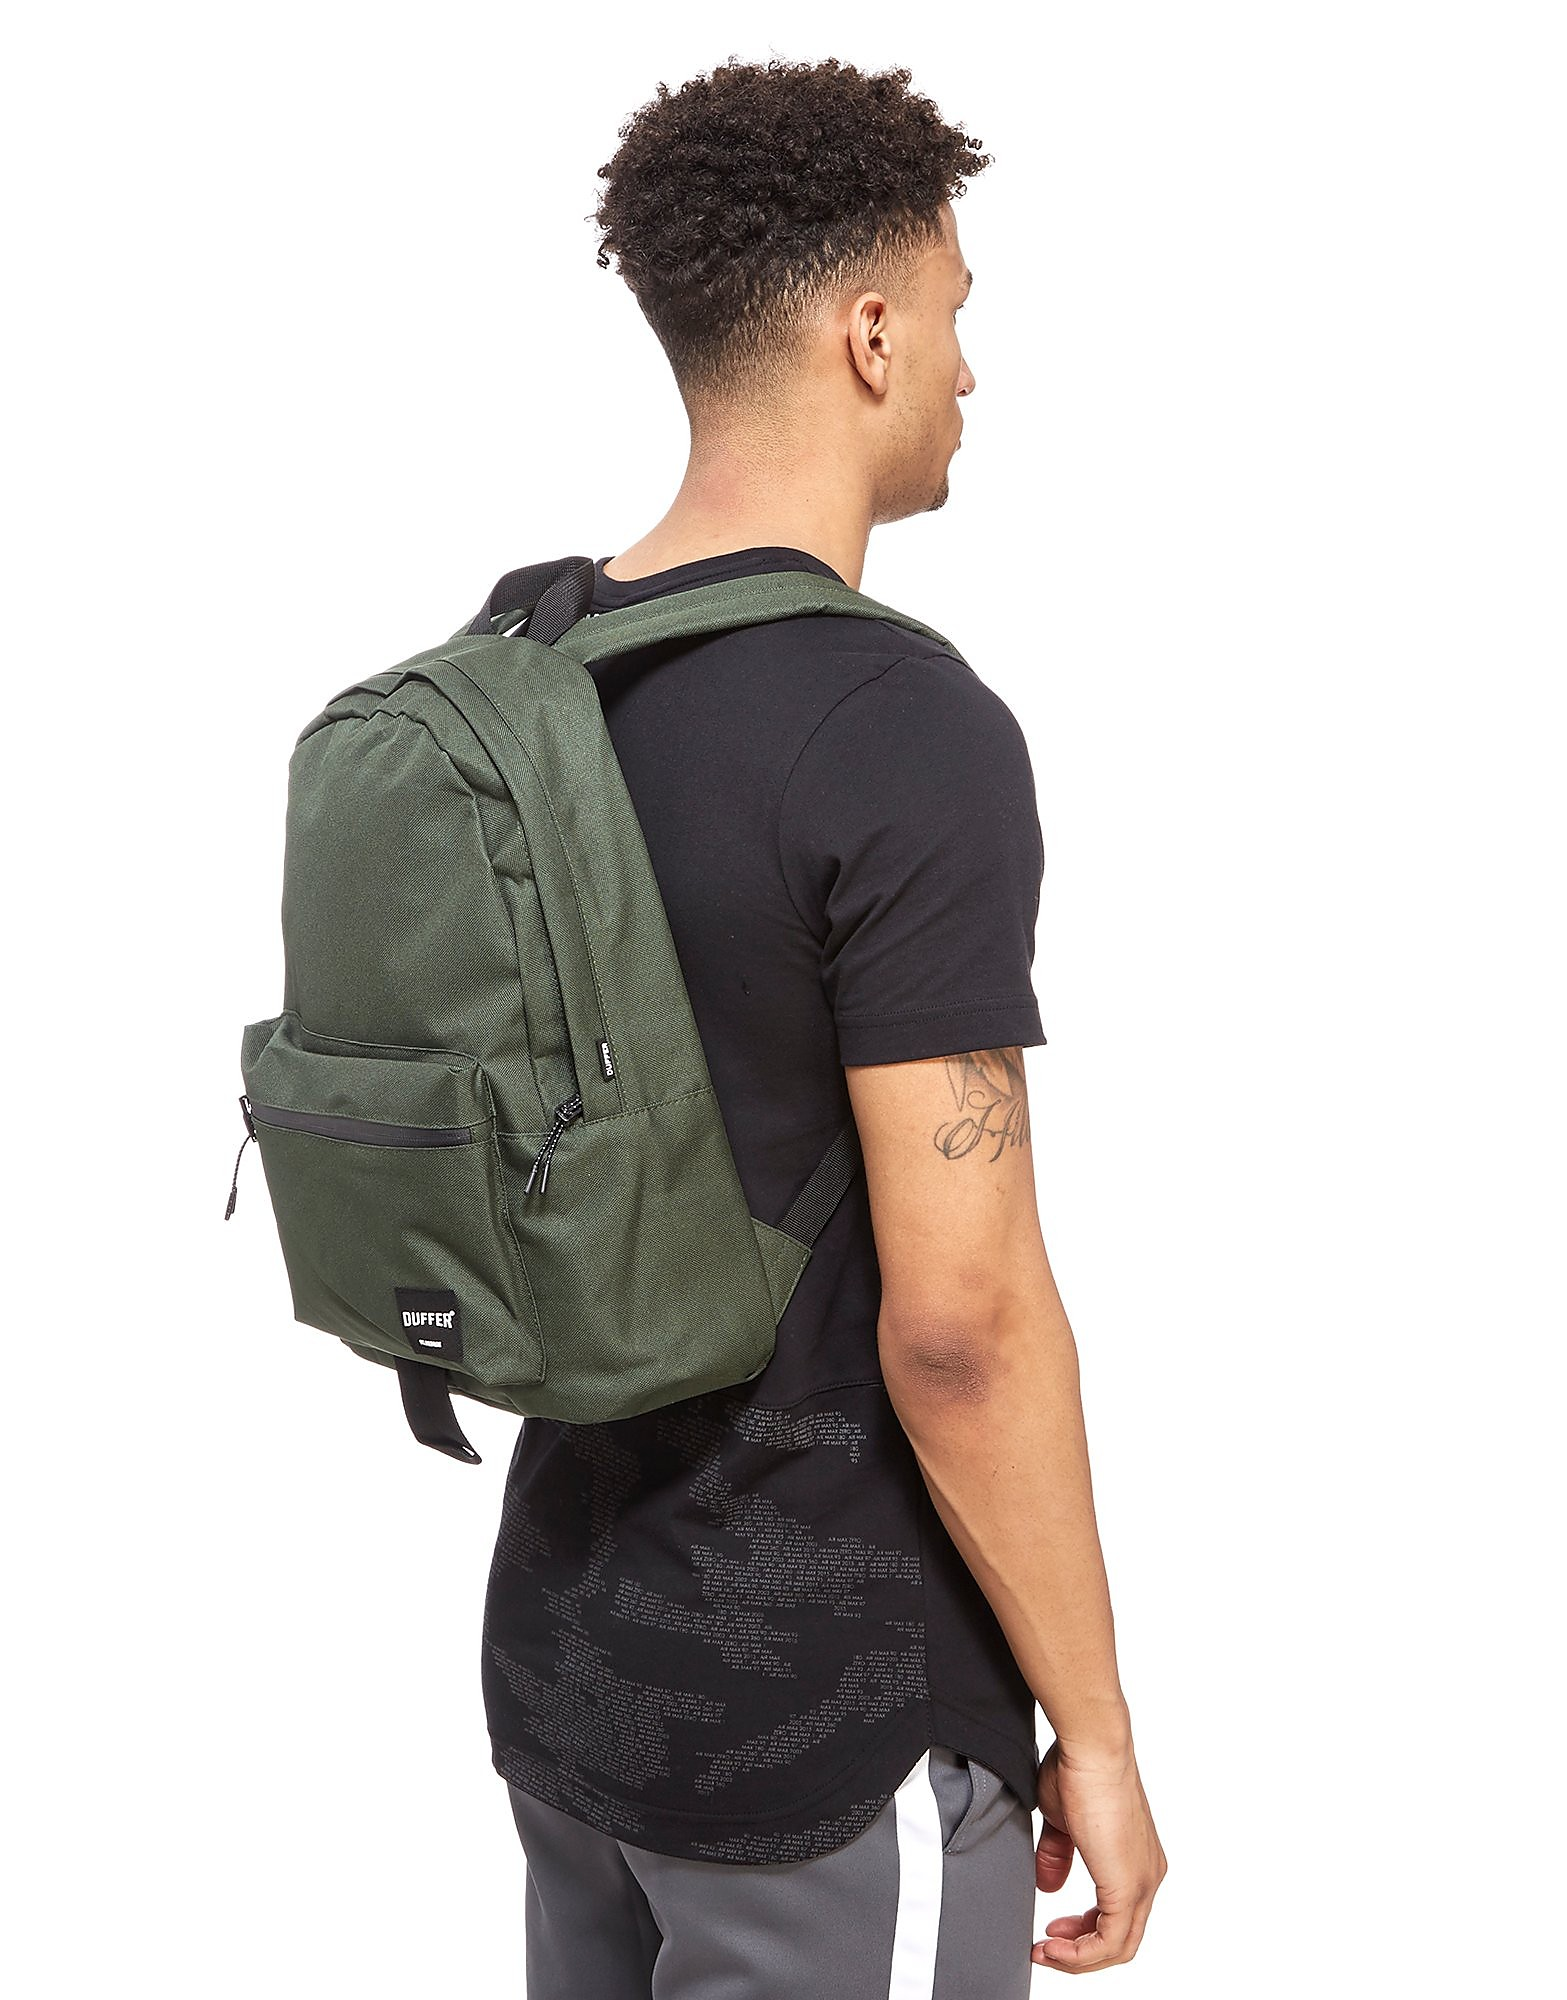 Duffer of St George Black Label Mitel Backpack